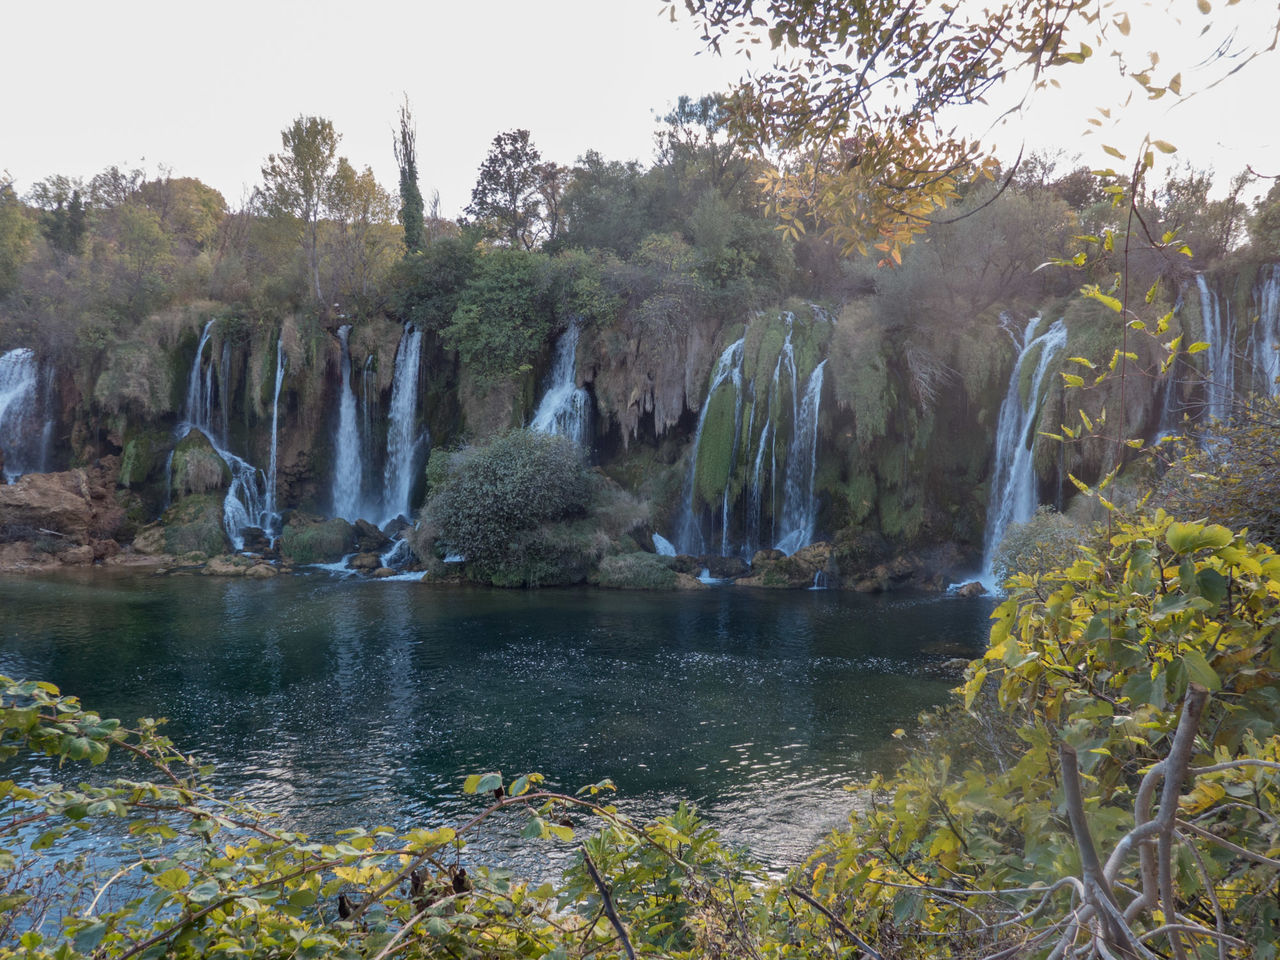 Tree Water Nature No People Fountain Beauty In Nature Landscape Kravice Boat Reflection Nature Waterfall Famous Place Bosnia And Herzegovina Kravica, Bosnia & Herzegovina Tourism Lonely Tourist Attraction  Outdoors Tree Tourist